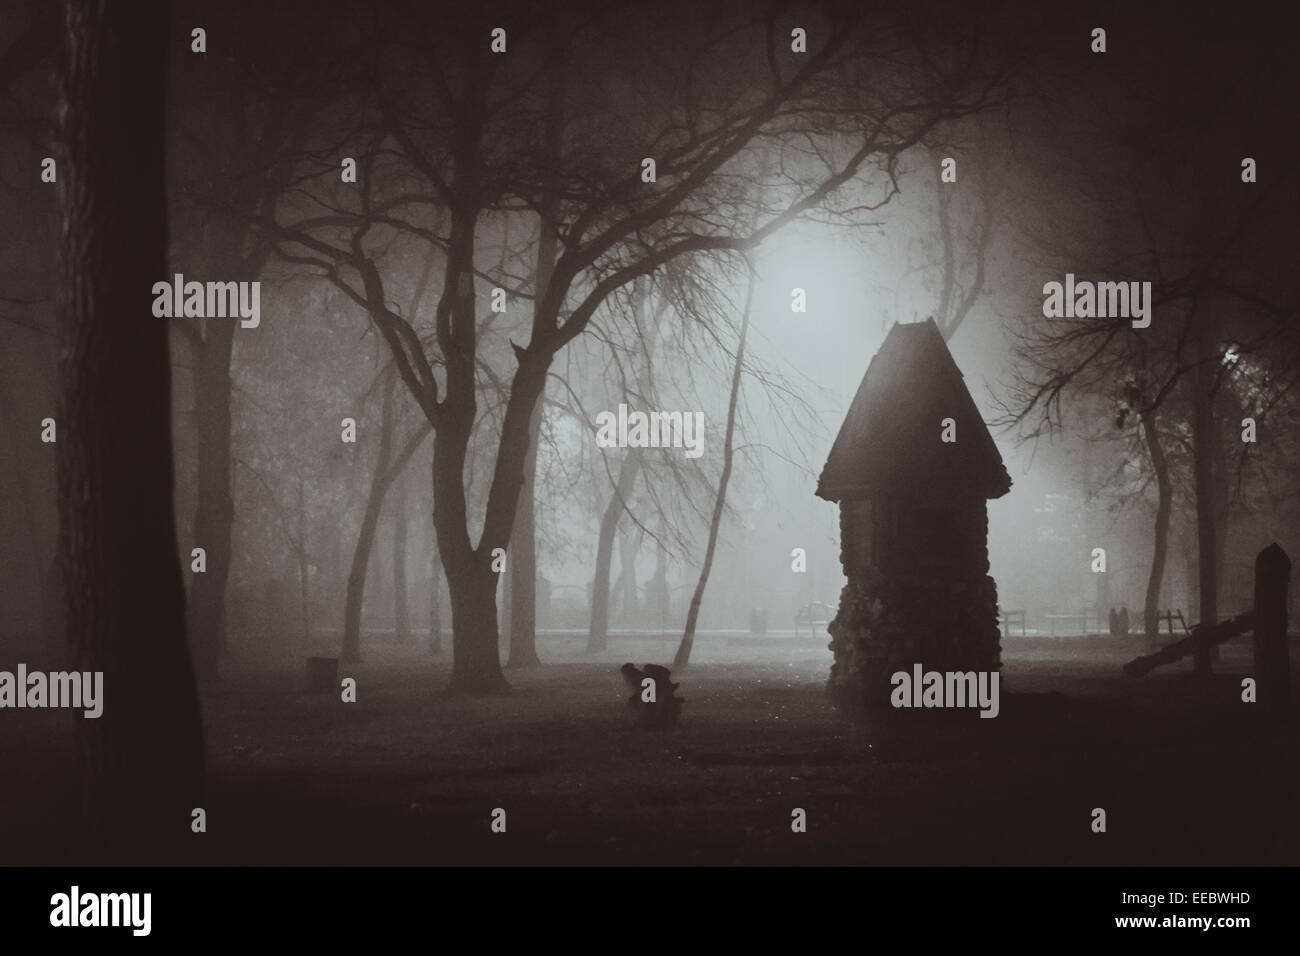 horror lighting. Horror Scene Of A Autumn Fog. LIGHTING FILM NOIR STYLE Lighting S